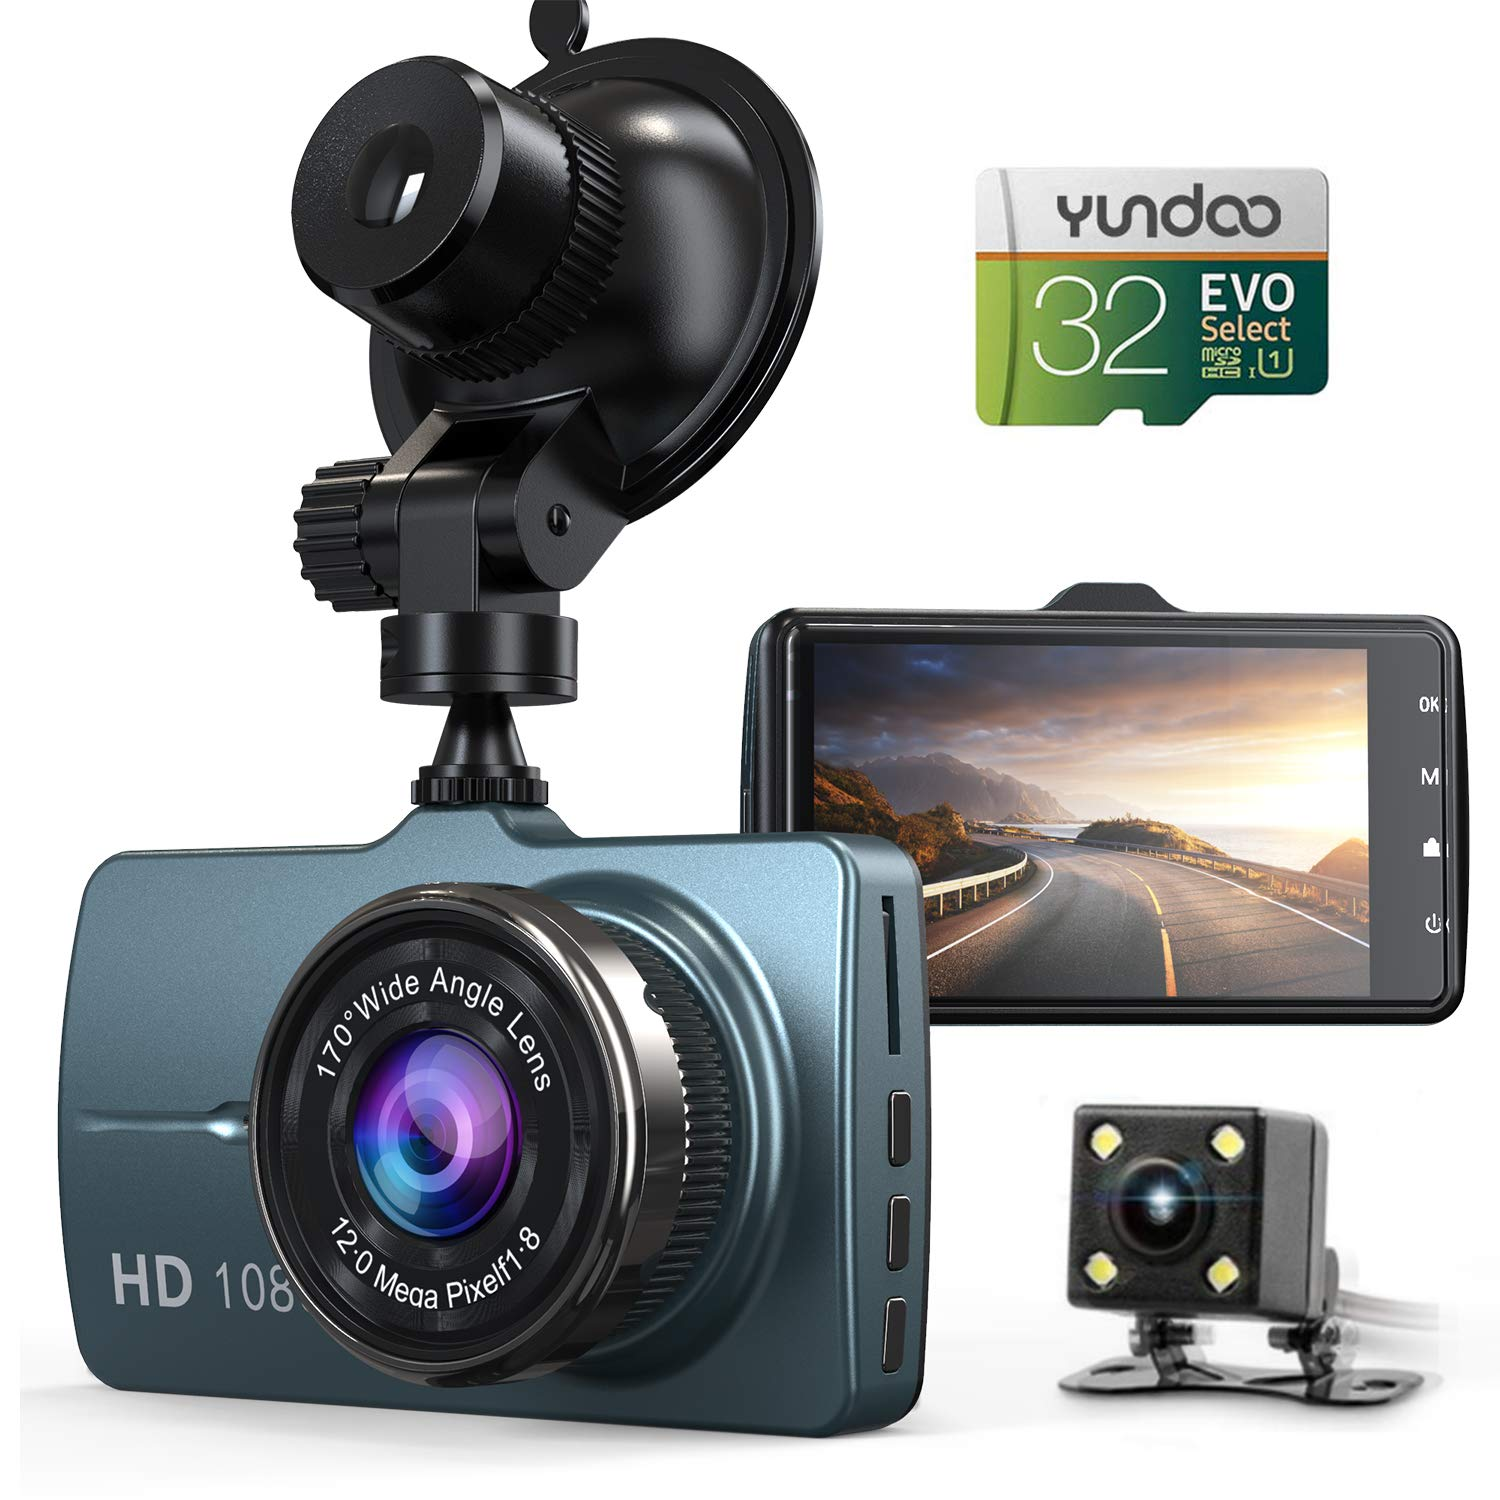 "Dash Cam Front and Rear Car Camera, 1080P 3.2"" Dashboard Camera with 32GB SD Card, 170°Wide Angle, Night Vision Dashcam for Cars, Driving Recorder with G-Sensor, Loop Recording, Parking Monitor"